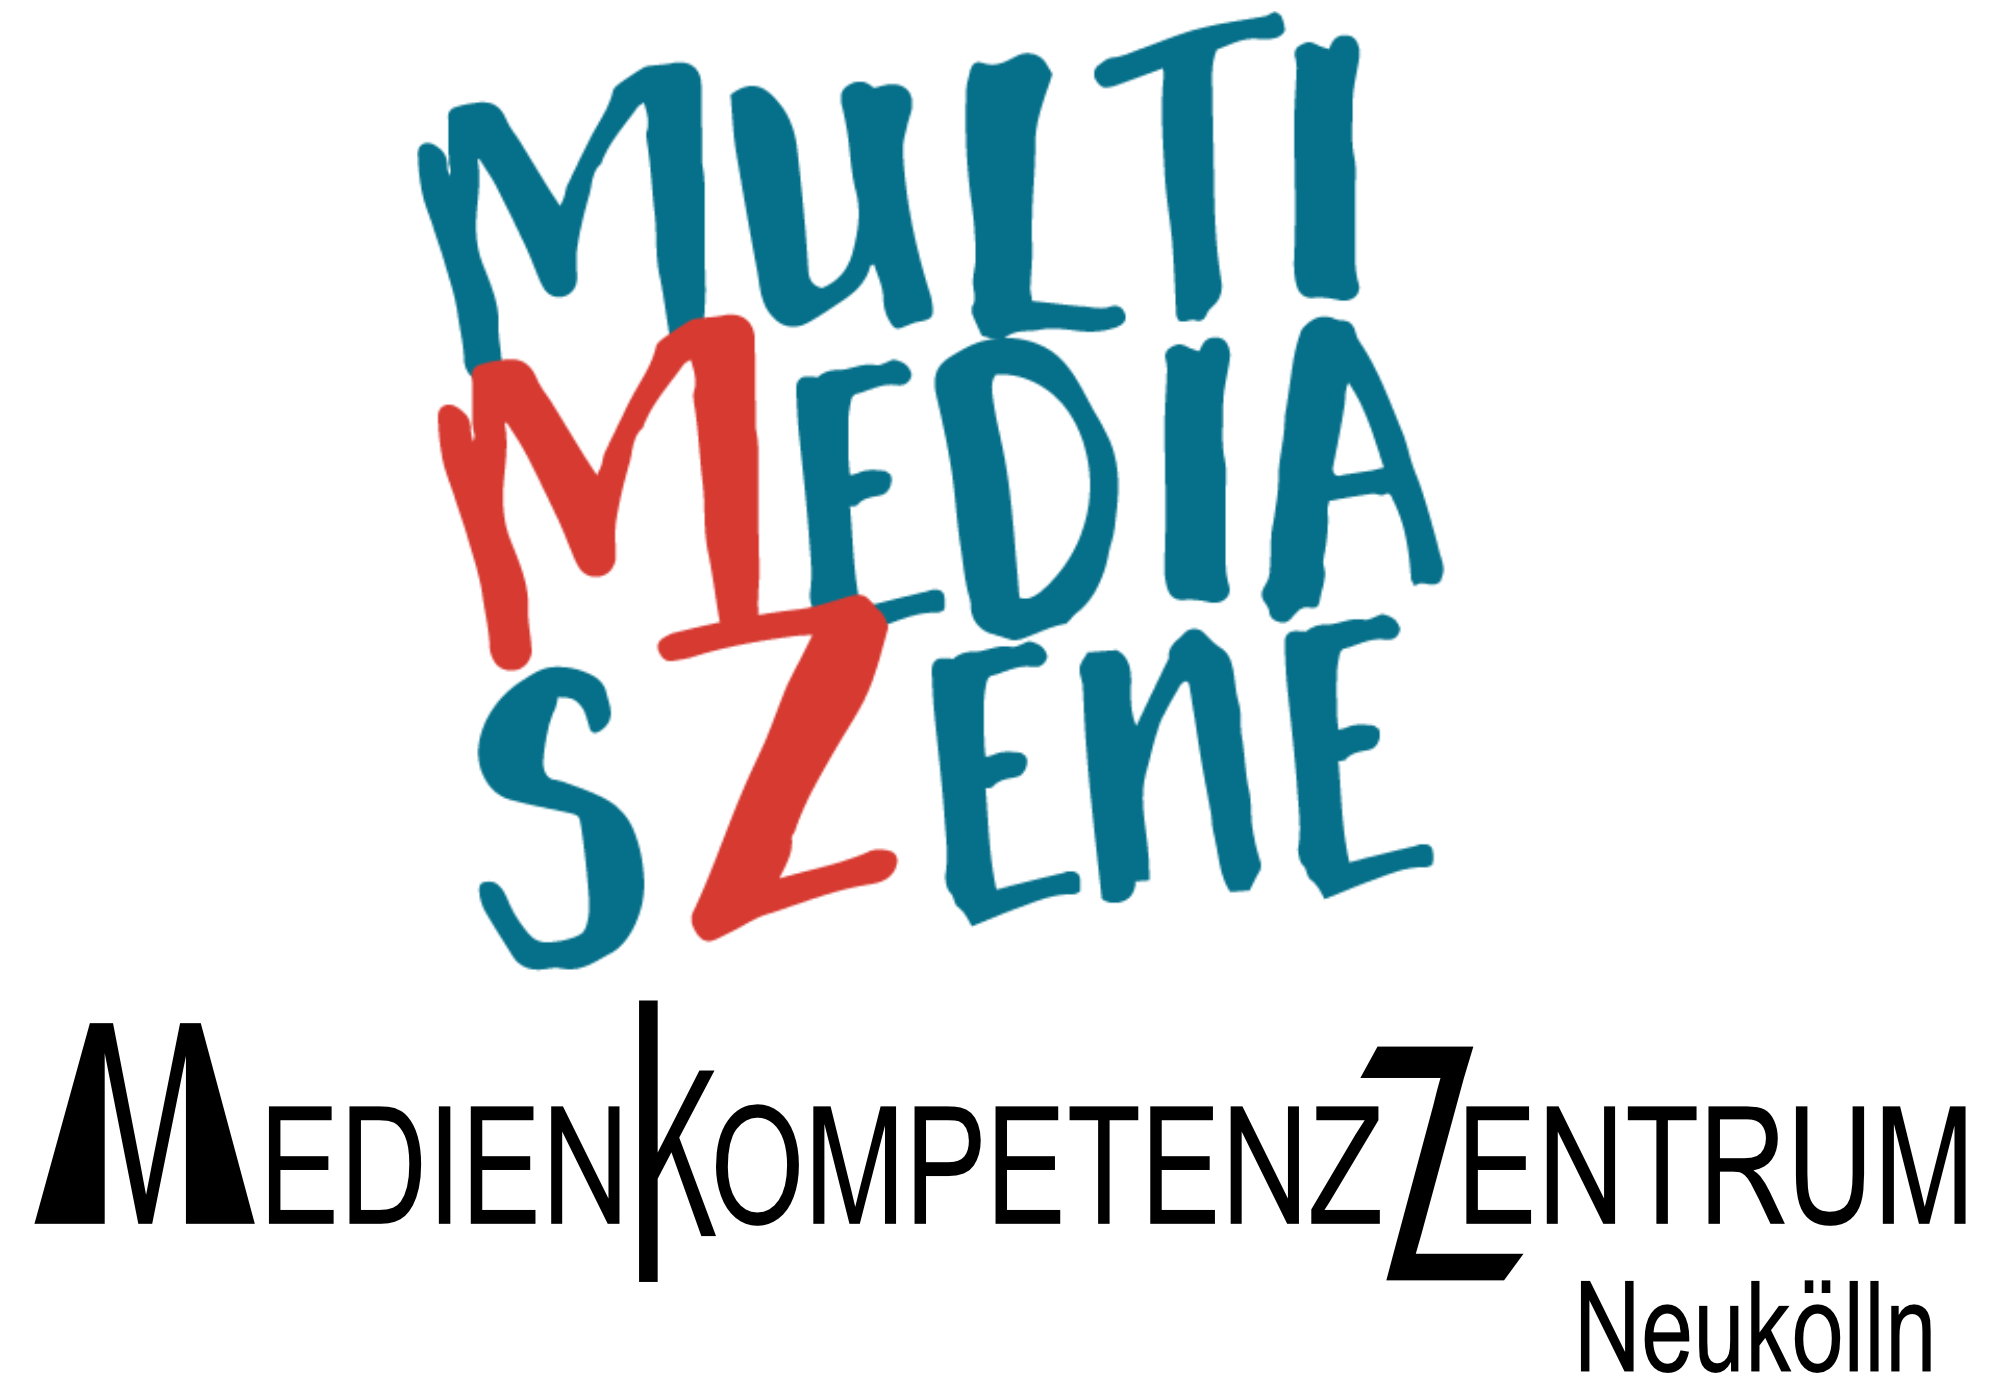 multimediaszene logo